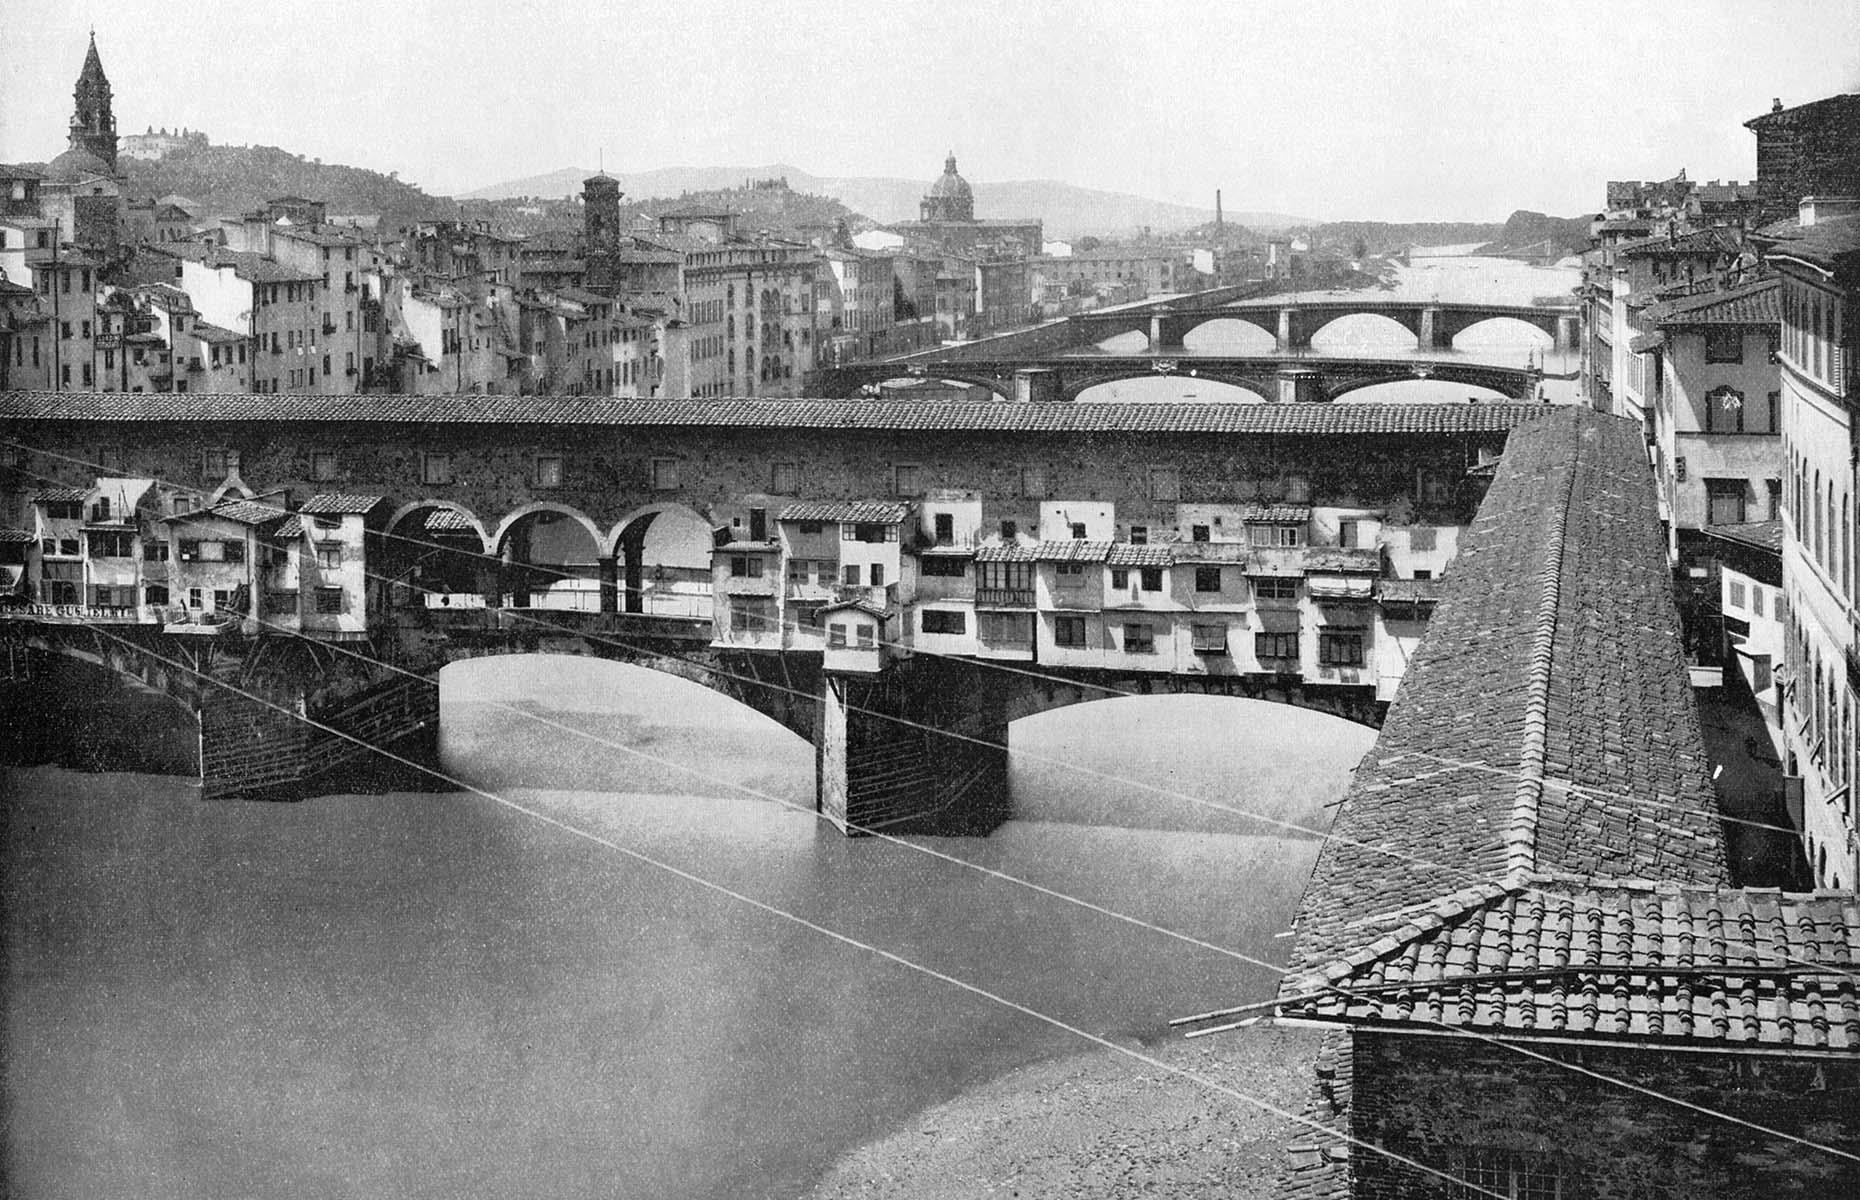 Slide 16 of 27: A city with a long and illustrious history, Florence needs no introductions. Its famous Ponte Vecchio is captured here in 1893, just 22 years after Rome replaced the city as the capital of the Kingdom of Italy. During the Second World War the city was under a year-long German occupation and as the British troops closed in, the Germans had plans to destroy all of the bridges along the Arno river in 1944, including Ponte Vecchio. Thankfully, a consul managed to convince a German general to spare the bridge due to its historic value.